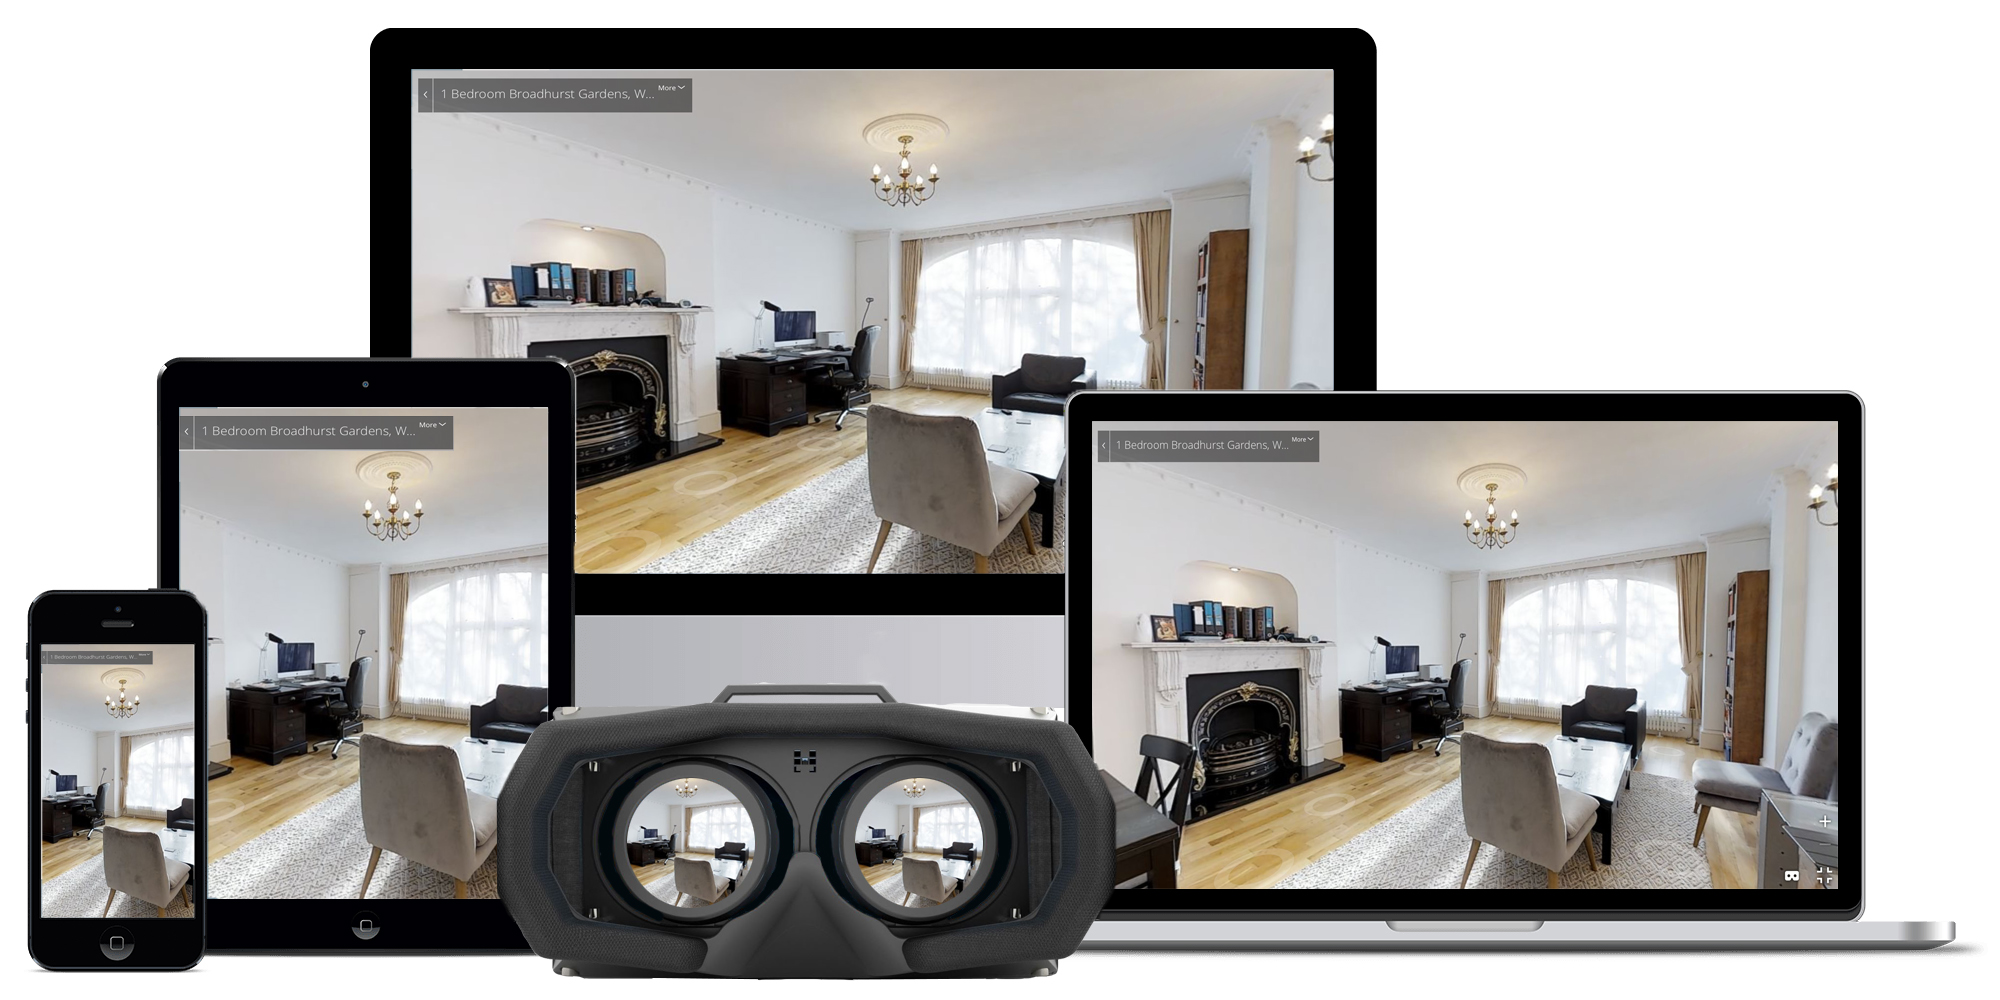 Available on all devices - Our virtual tours are available on all devices allowing your clients to view a property wherever they are. Whether this is through a virtual reality headset in your office, at their own desk on the computer or whilst on the move with their phones.